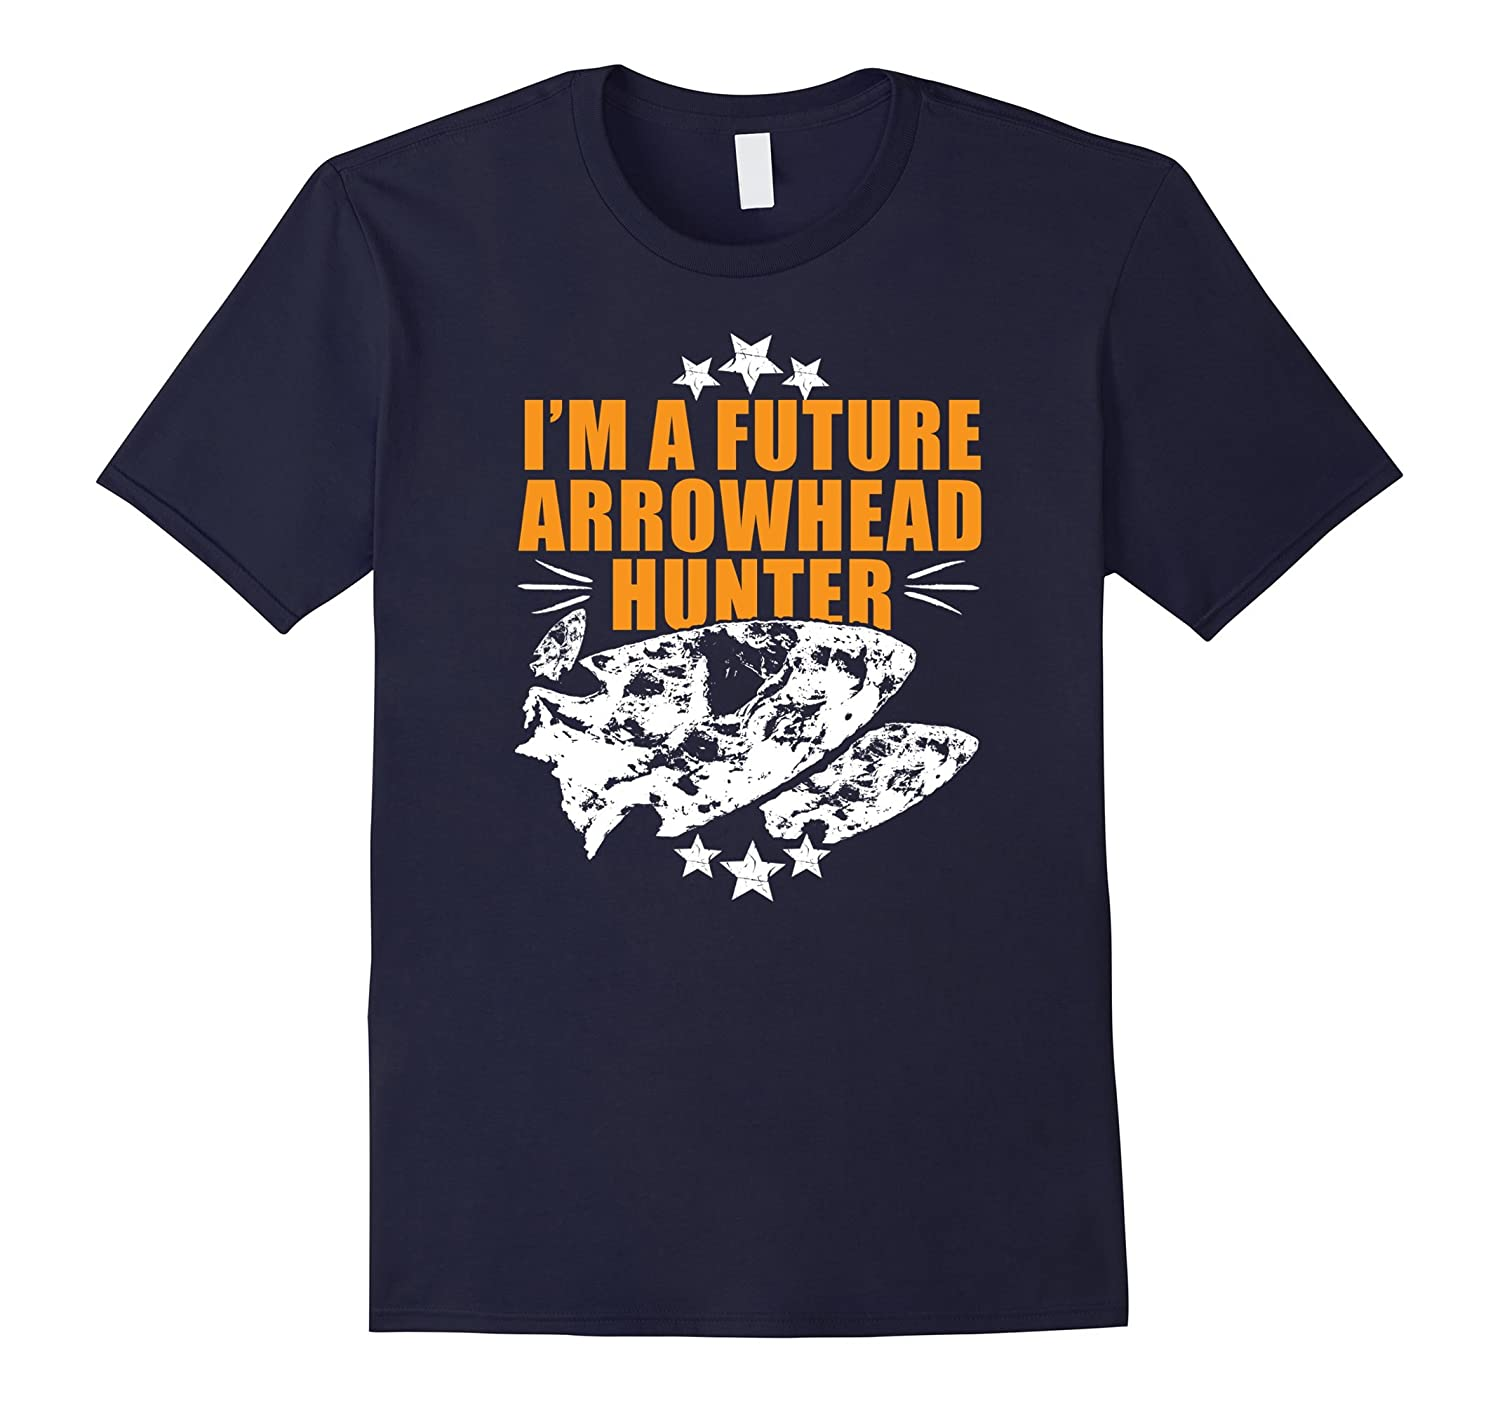 Arrowhead tshirt, perfect for budding arrowhead collectors-FL